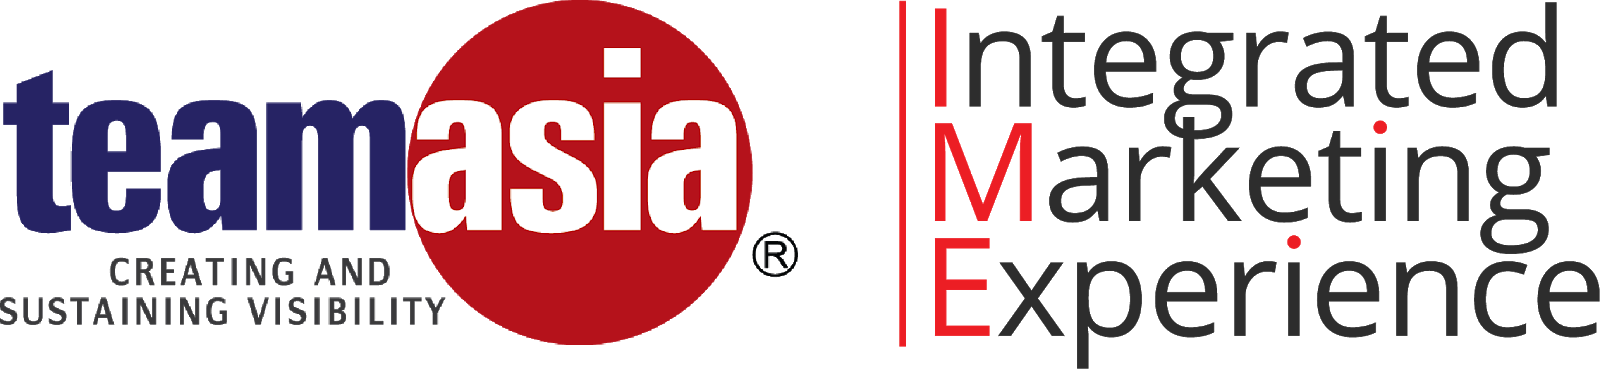 TeamAsia launches its Integrated Marketing Experience